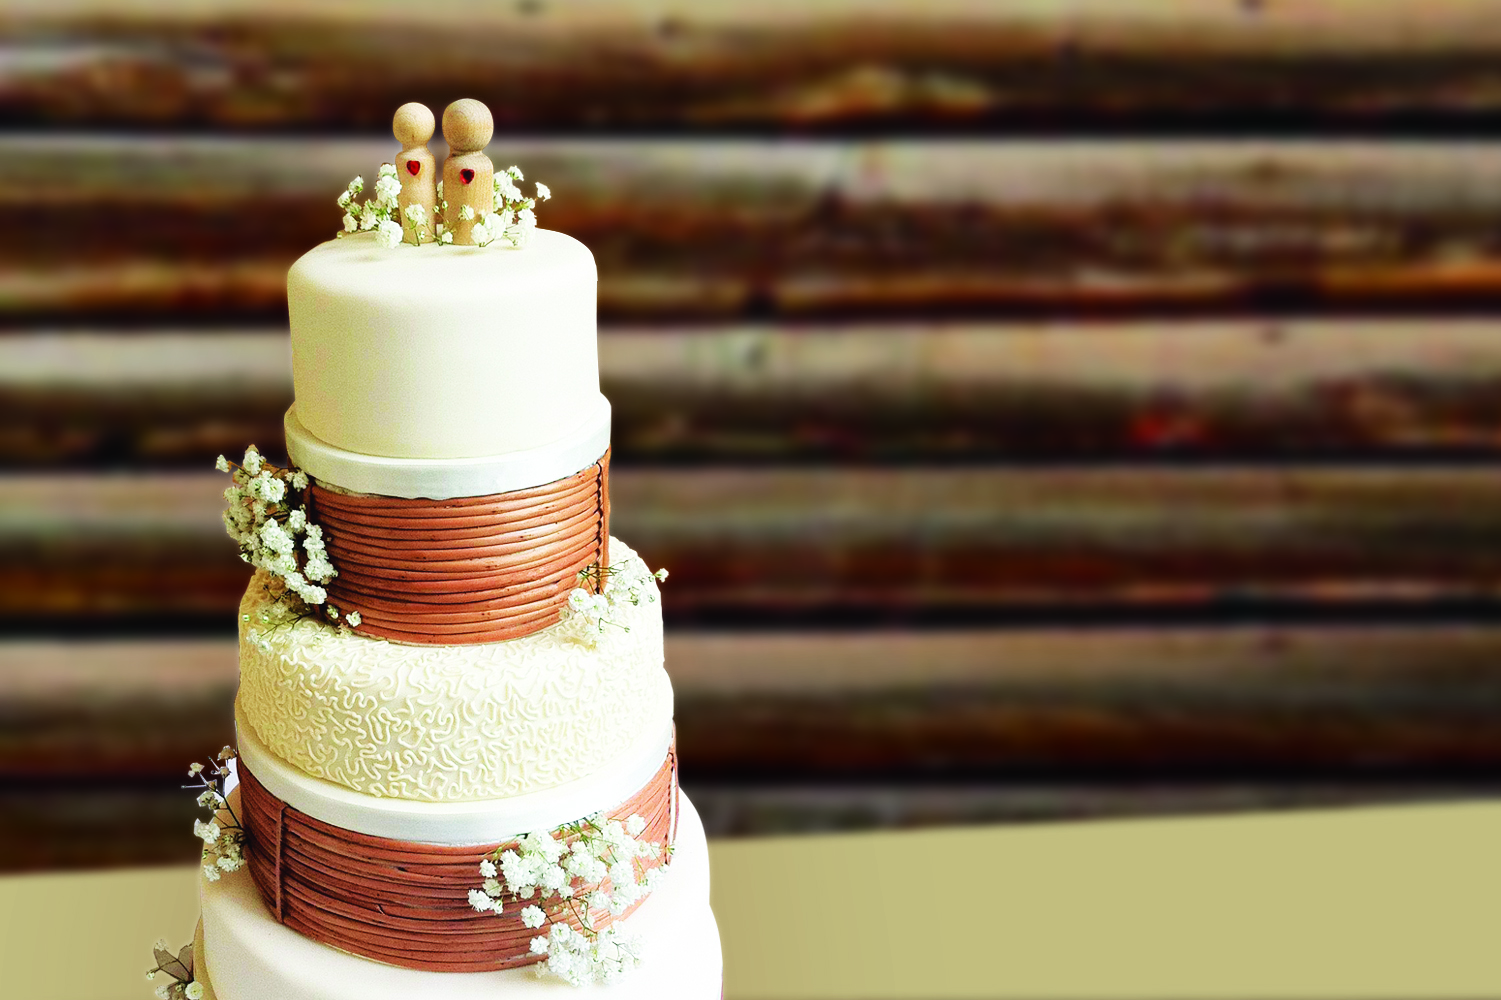 cakes-by-rachel-rachel-tiered-wedding-cake.jpg